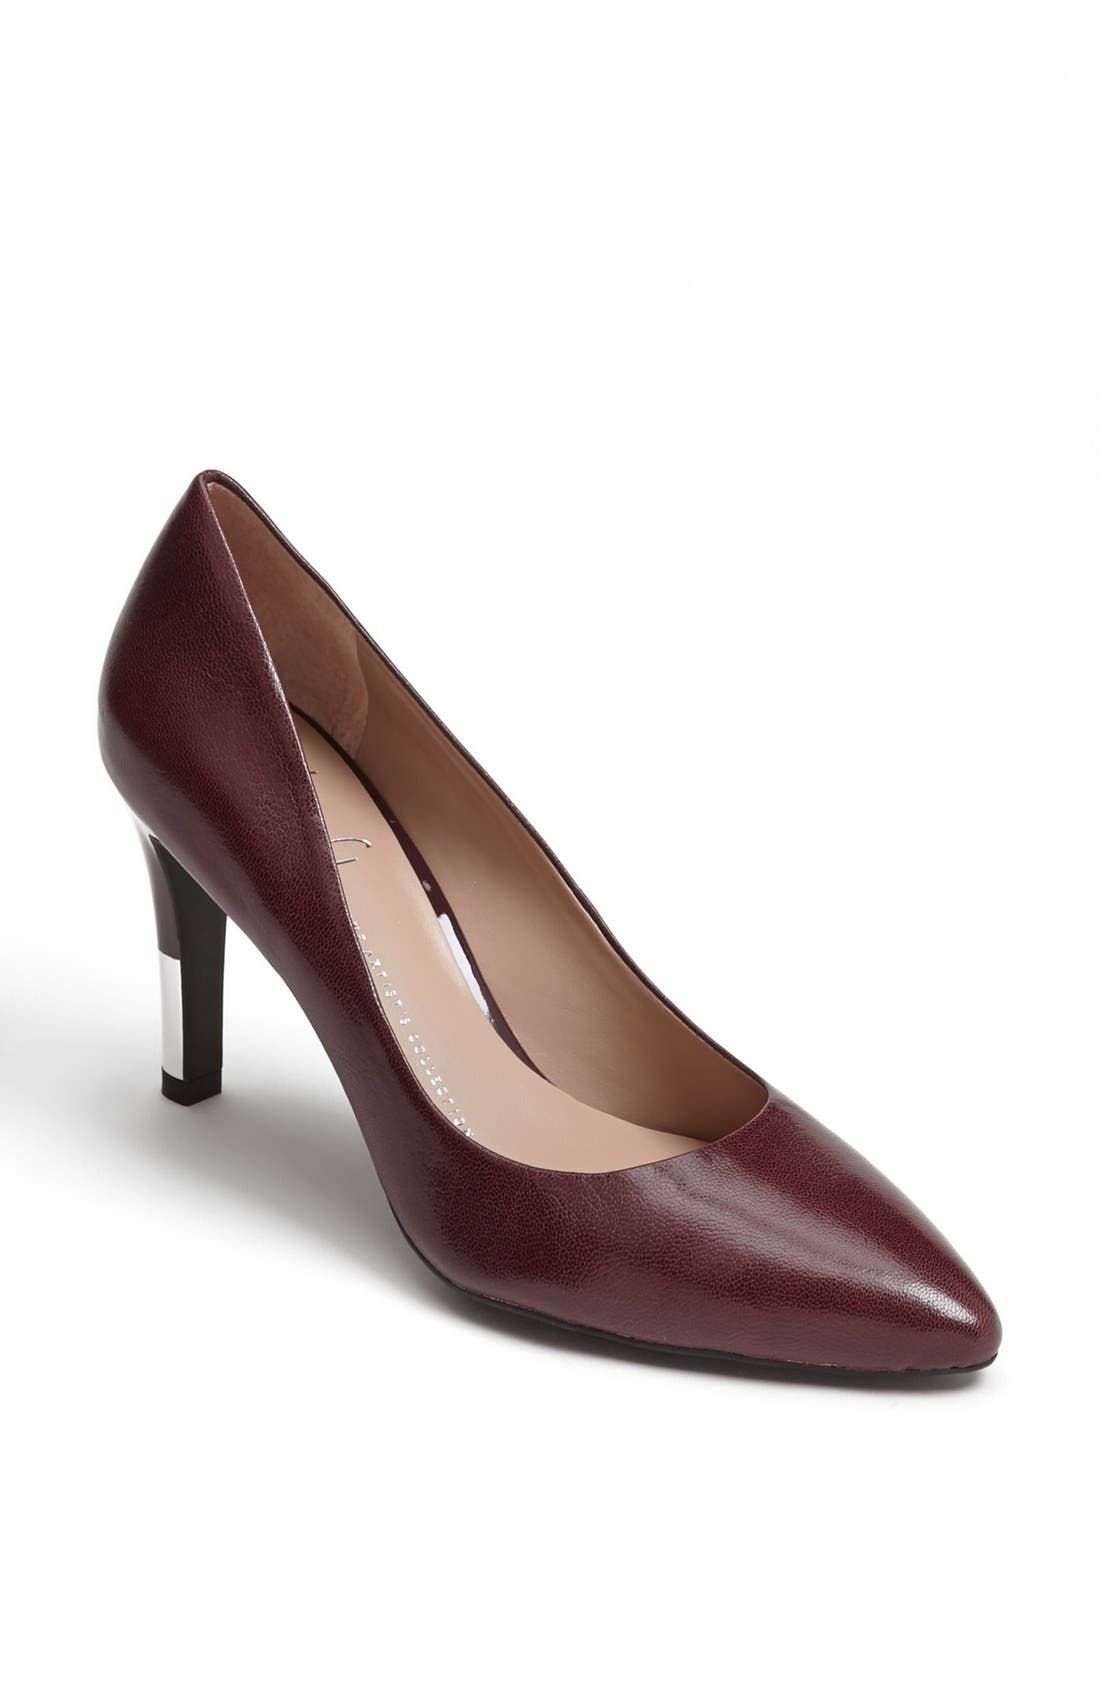 Alternate Image 1 Selected - Franco Sarto 'Mandolin' Pump